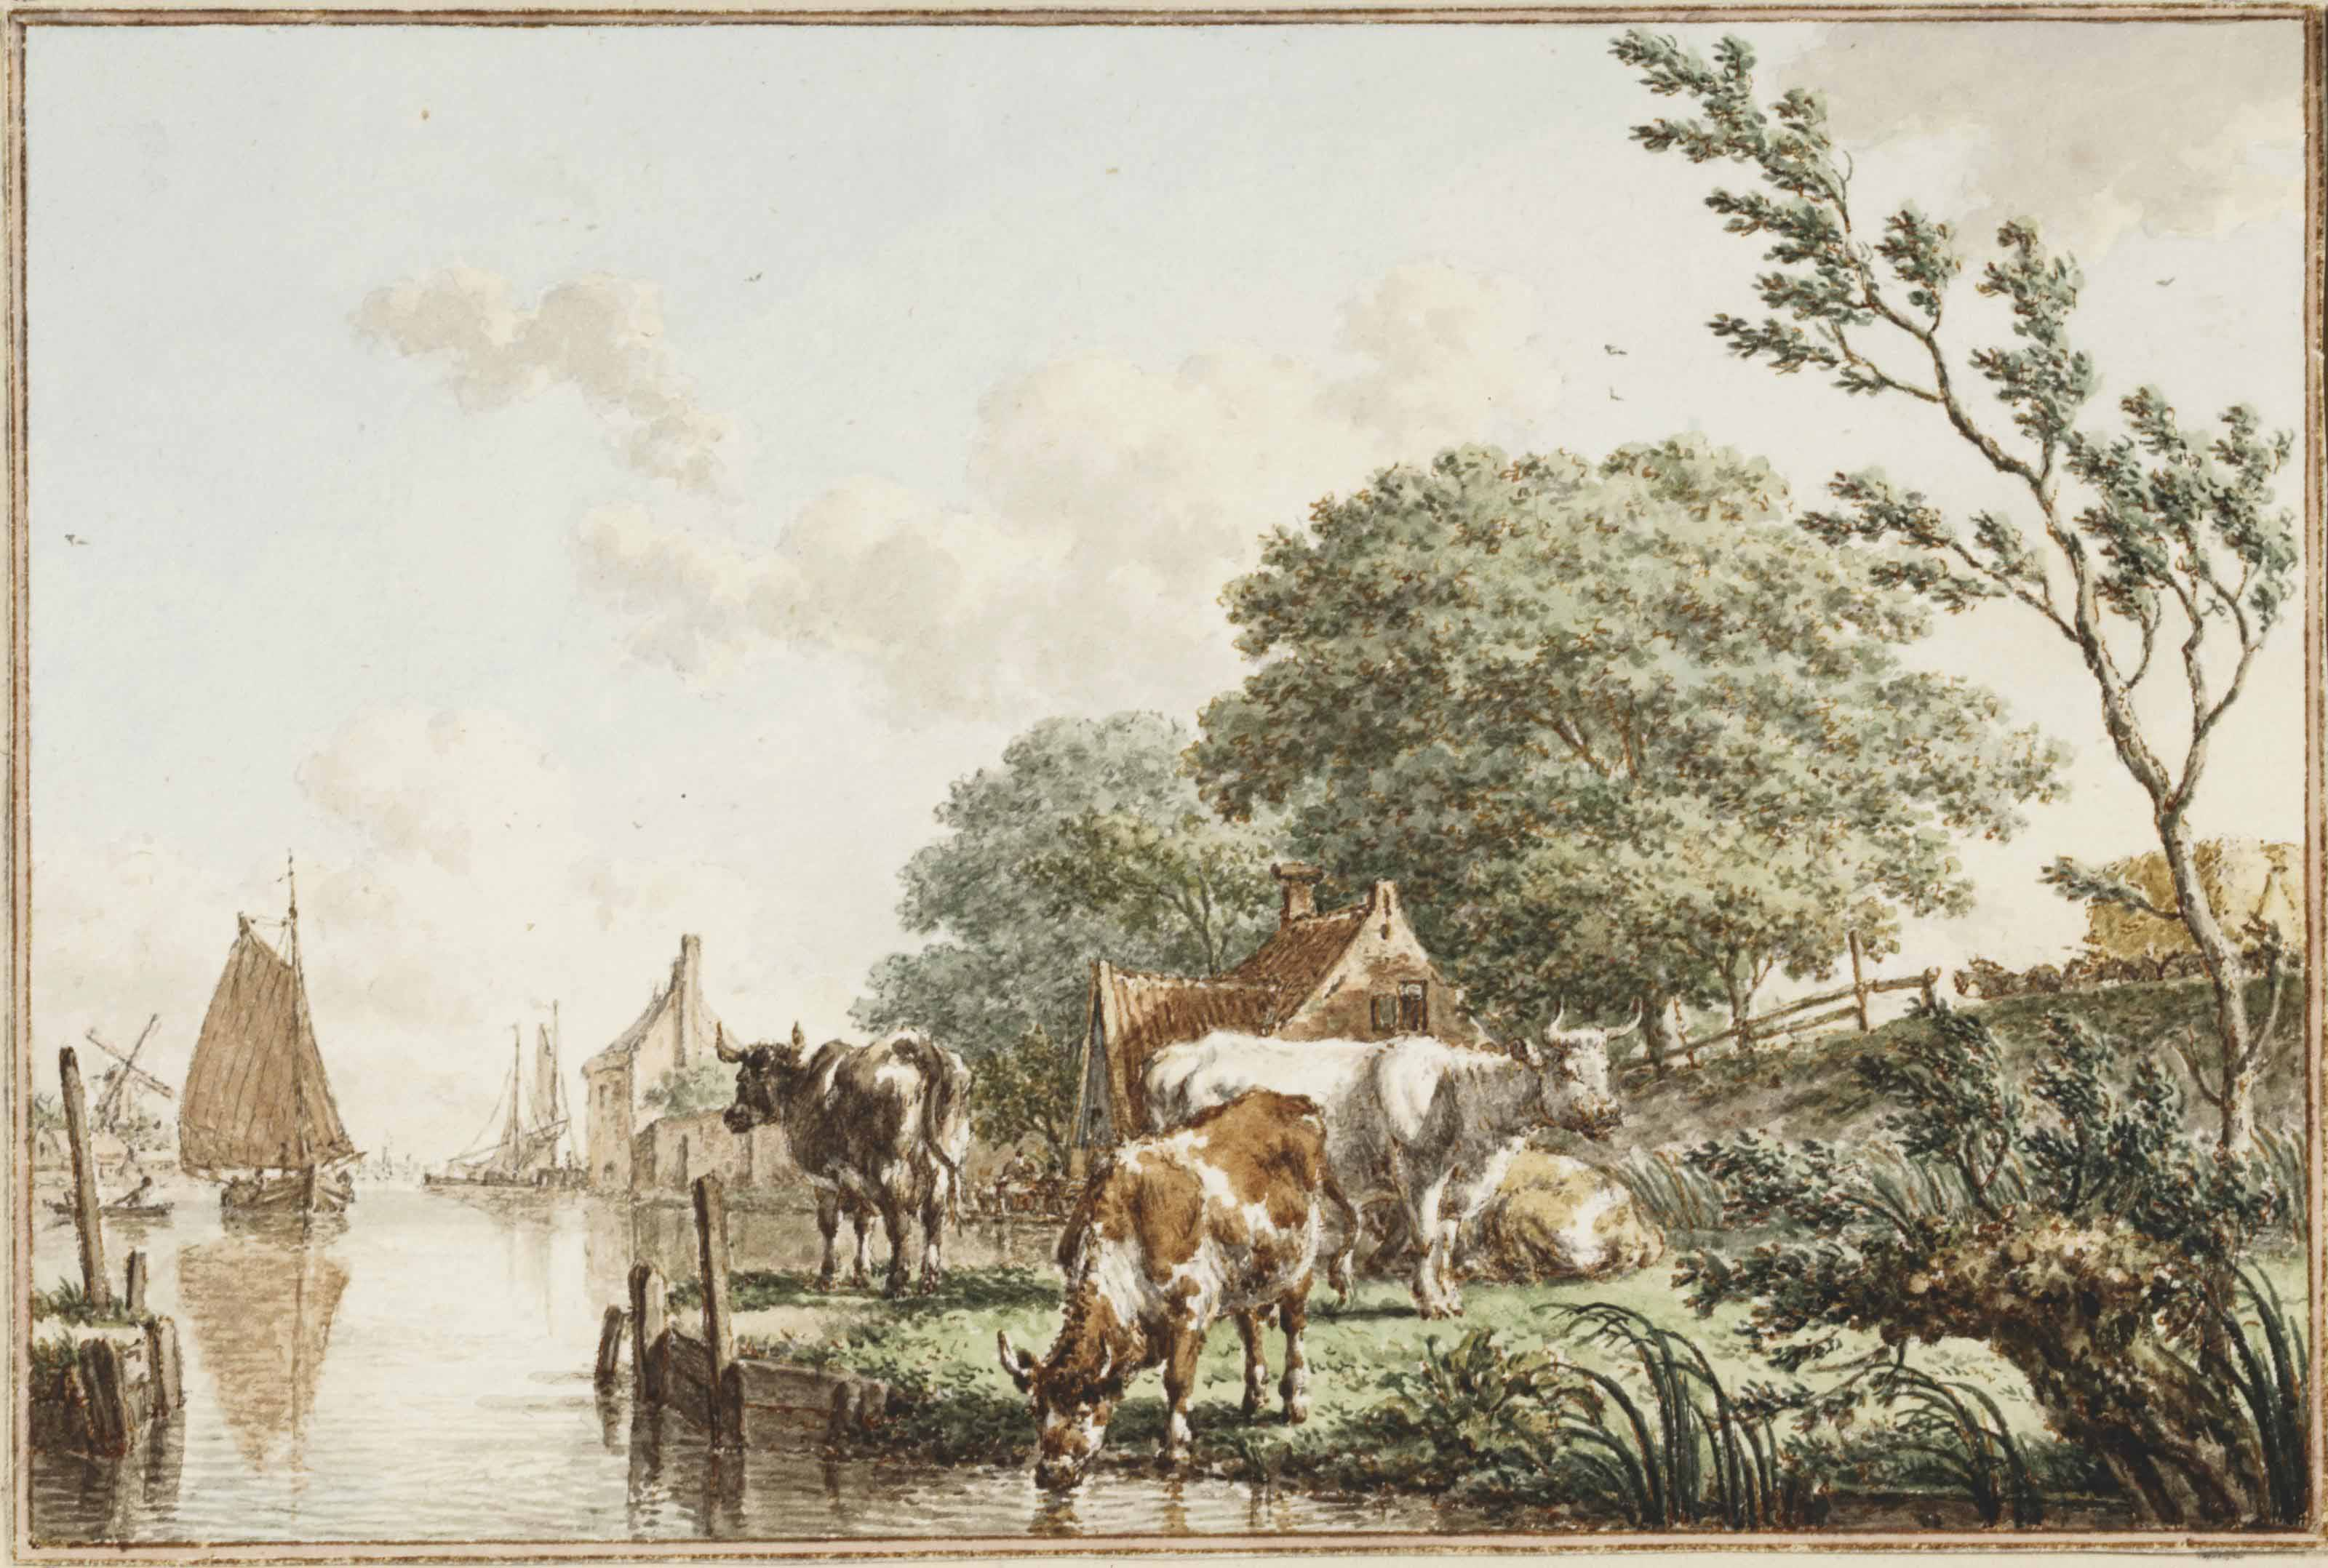 A summer landscape with cows beside a river, with a hay wagon to the right